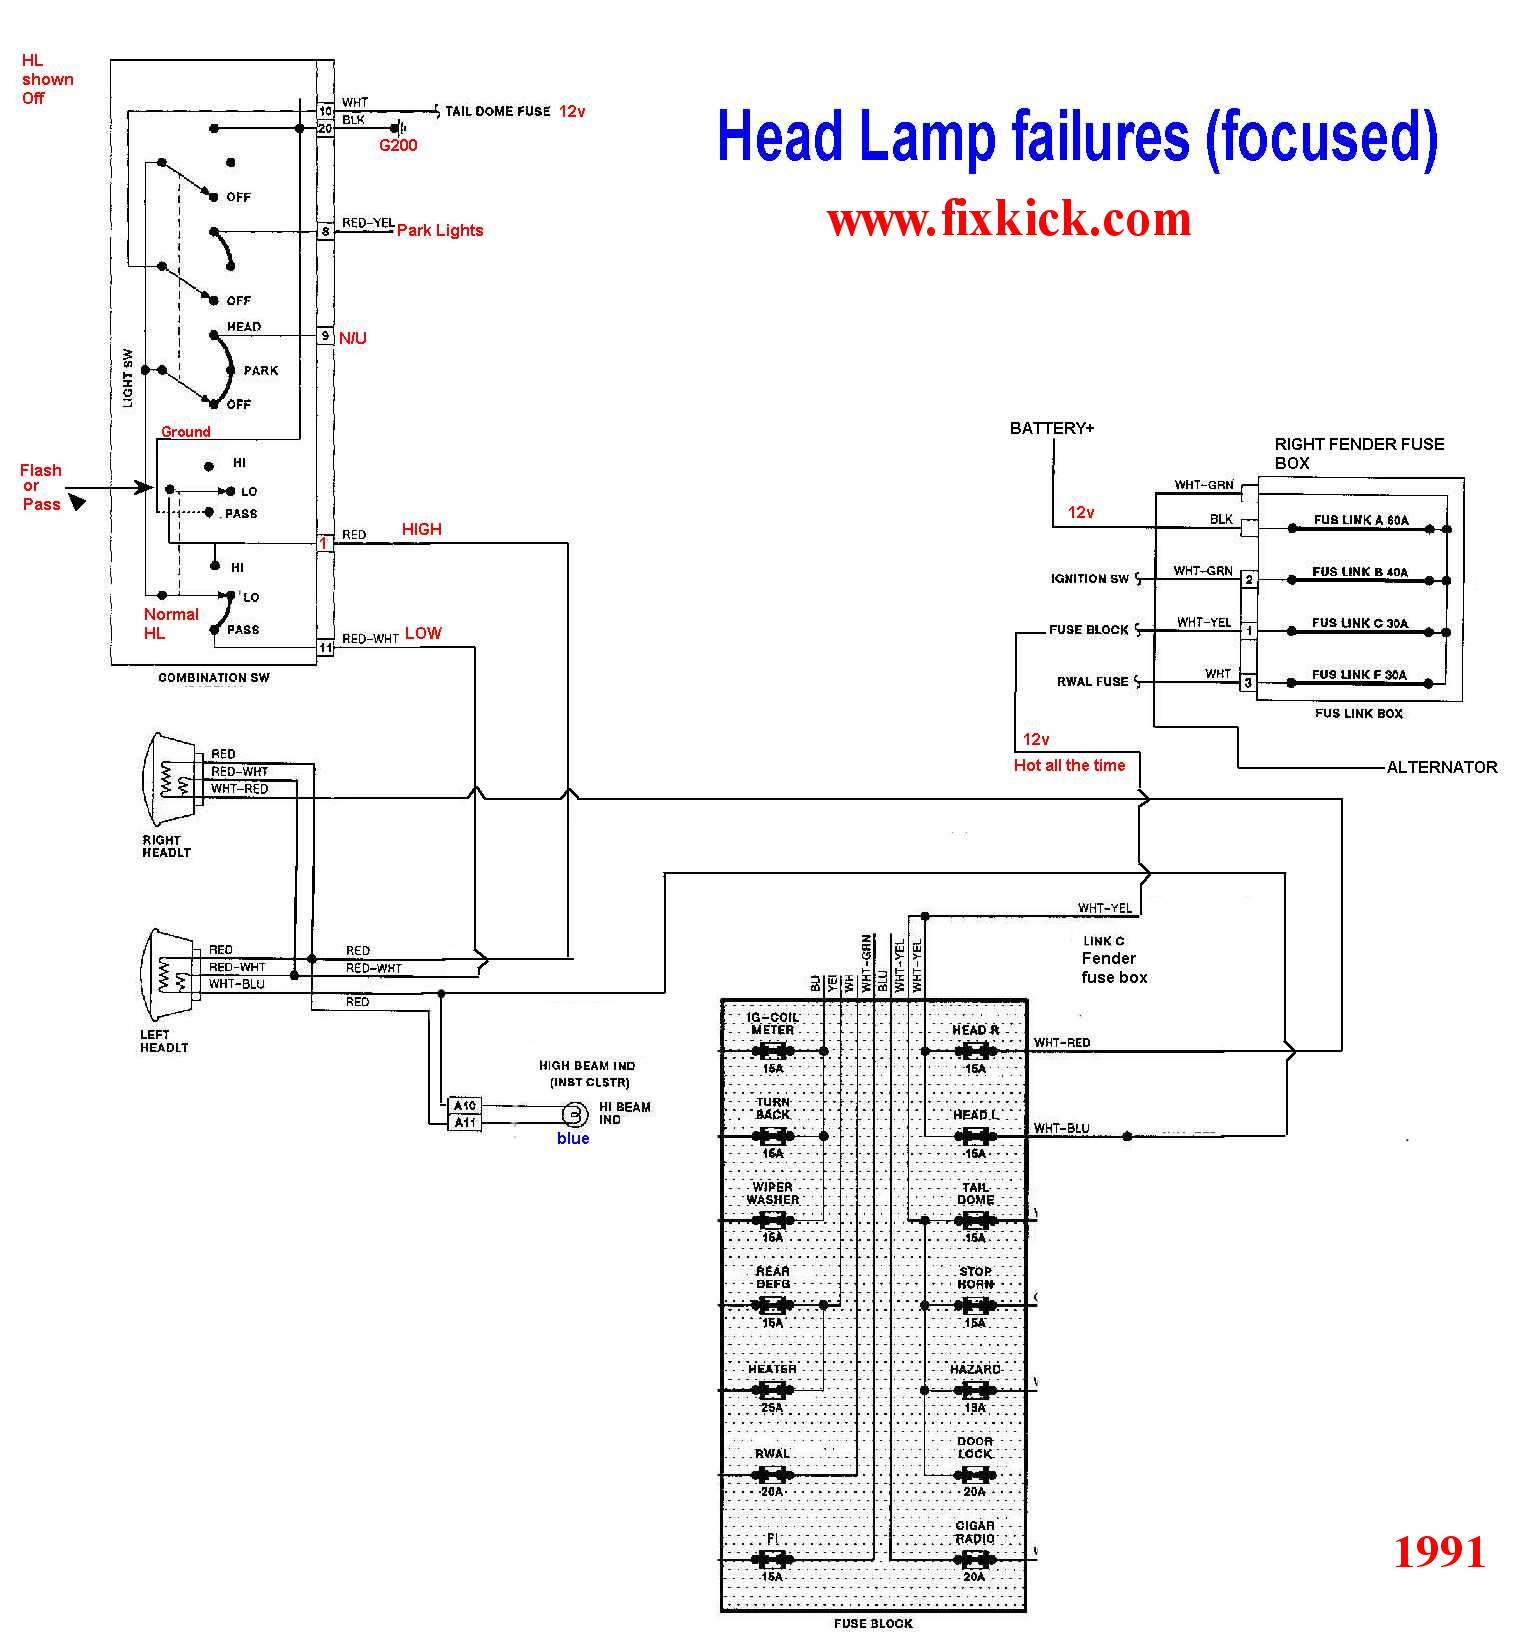 HL1A geo tracker wiring diagram 92 geo tracker wiring diagram \u2022 free 1991 geo metro headlight wiring diagram at nearapp.co